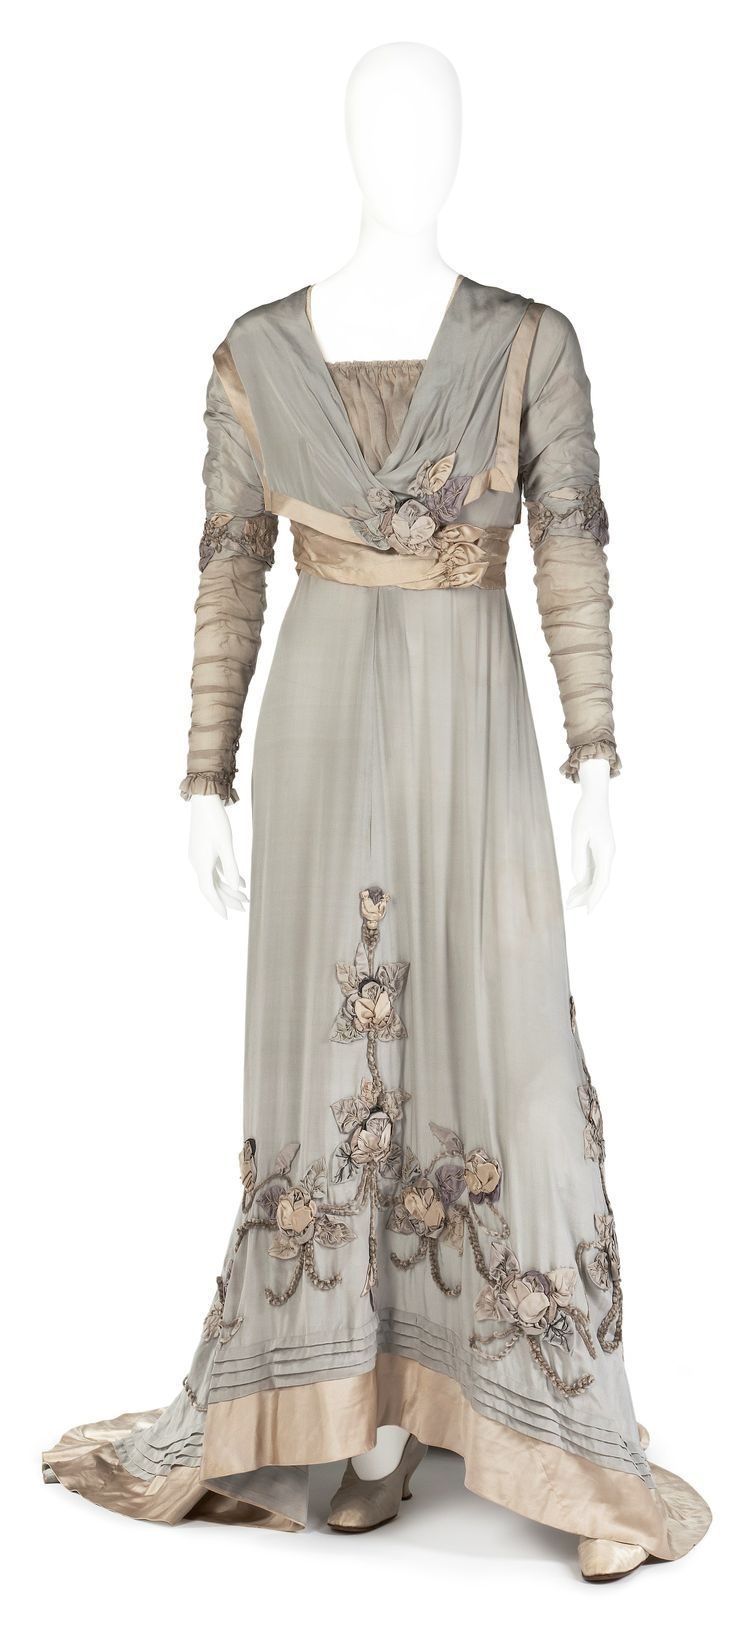 4168 best ZC-Historical fashion 1900 images on Pinterest ...